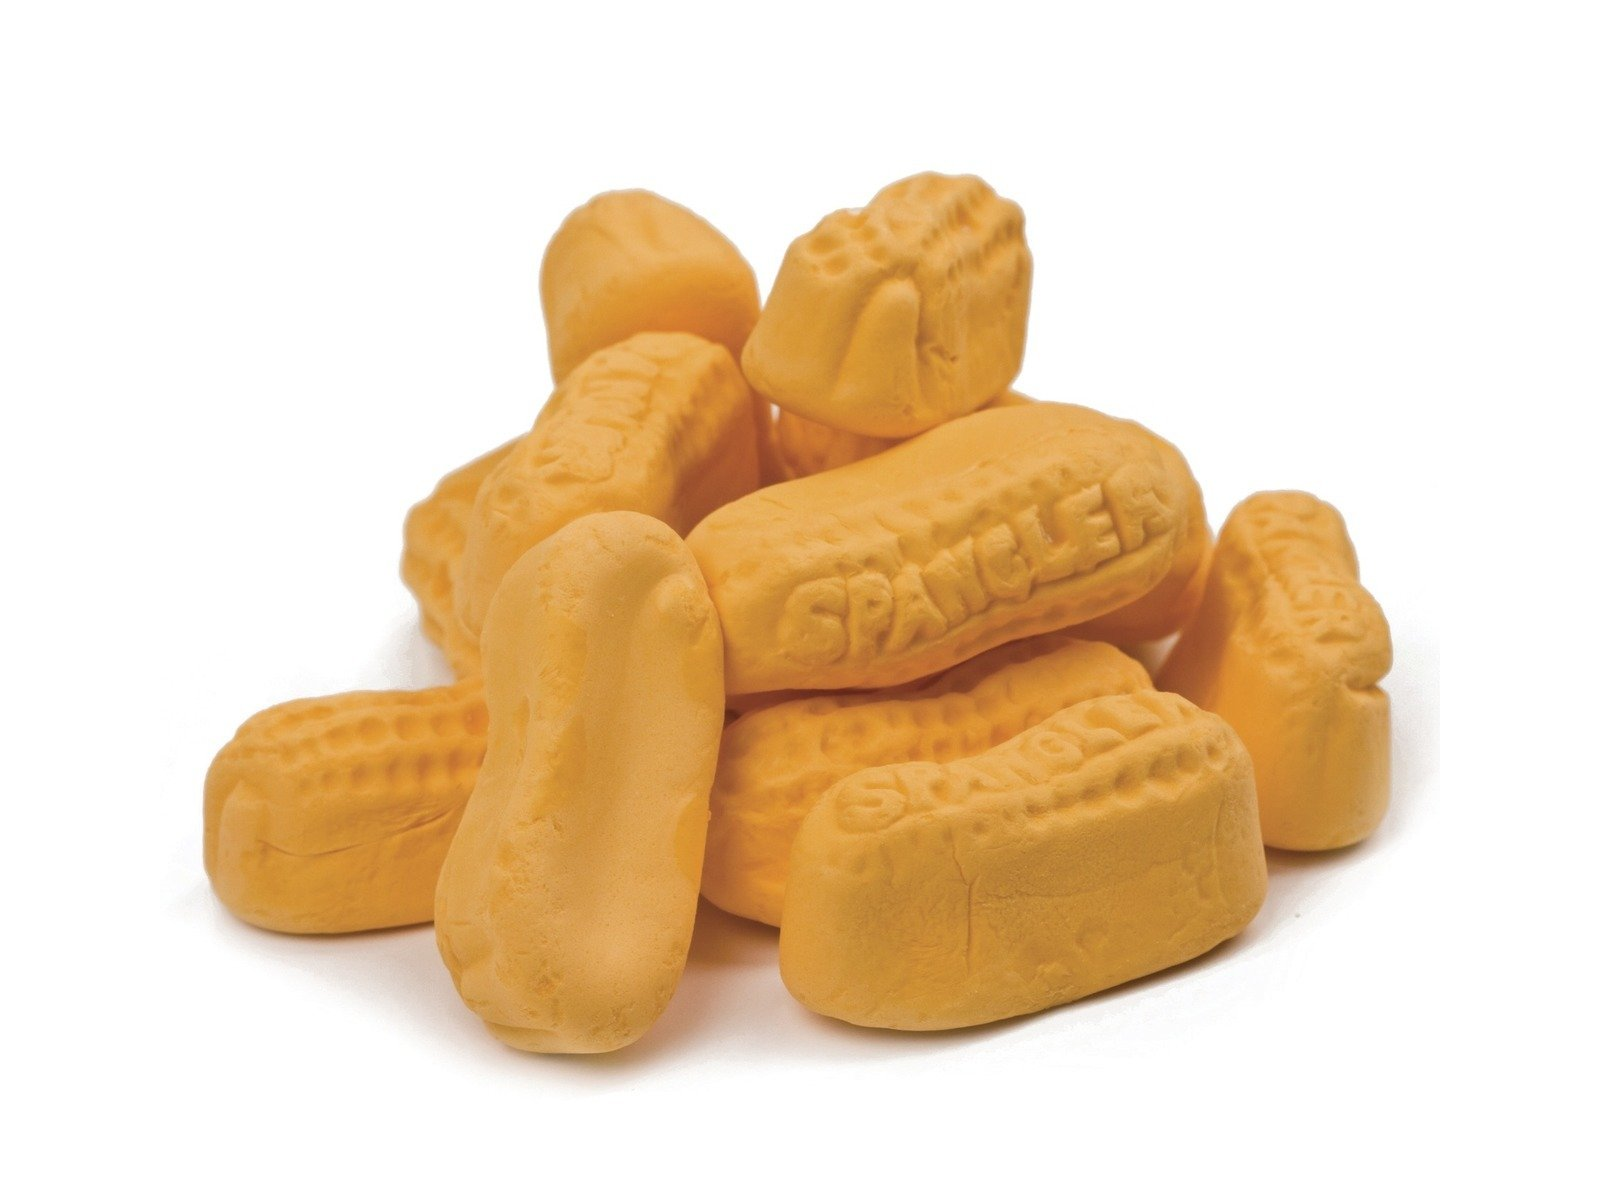 YANKEETRADERS Circus Peanuts Old Fashioned Candy 2 Lbs